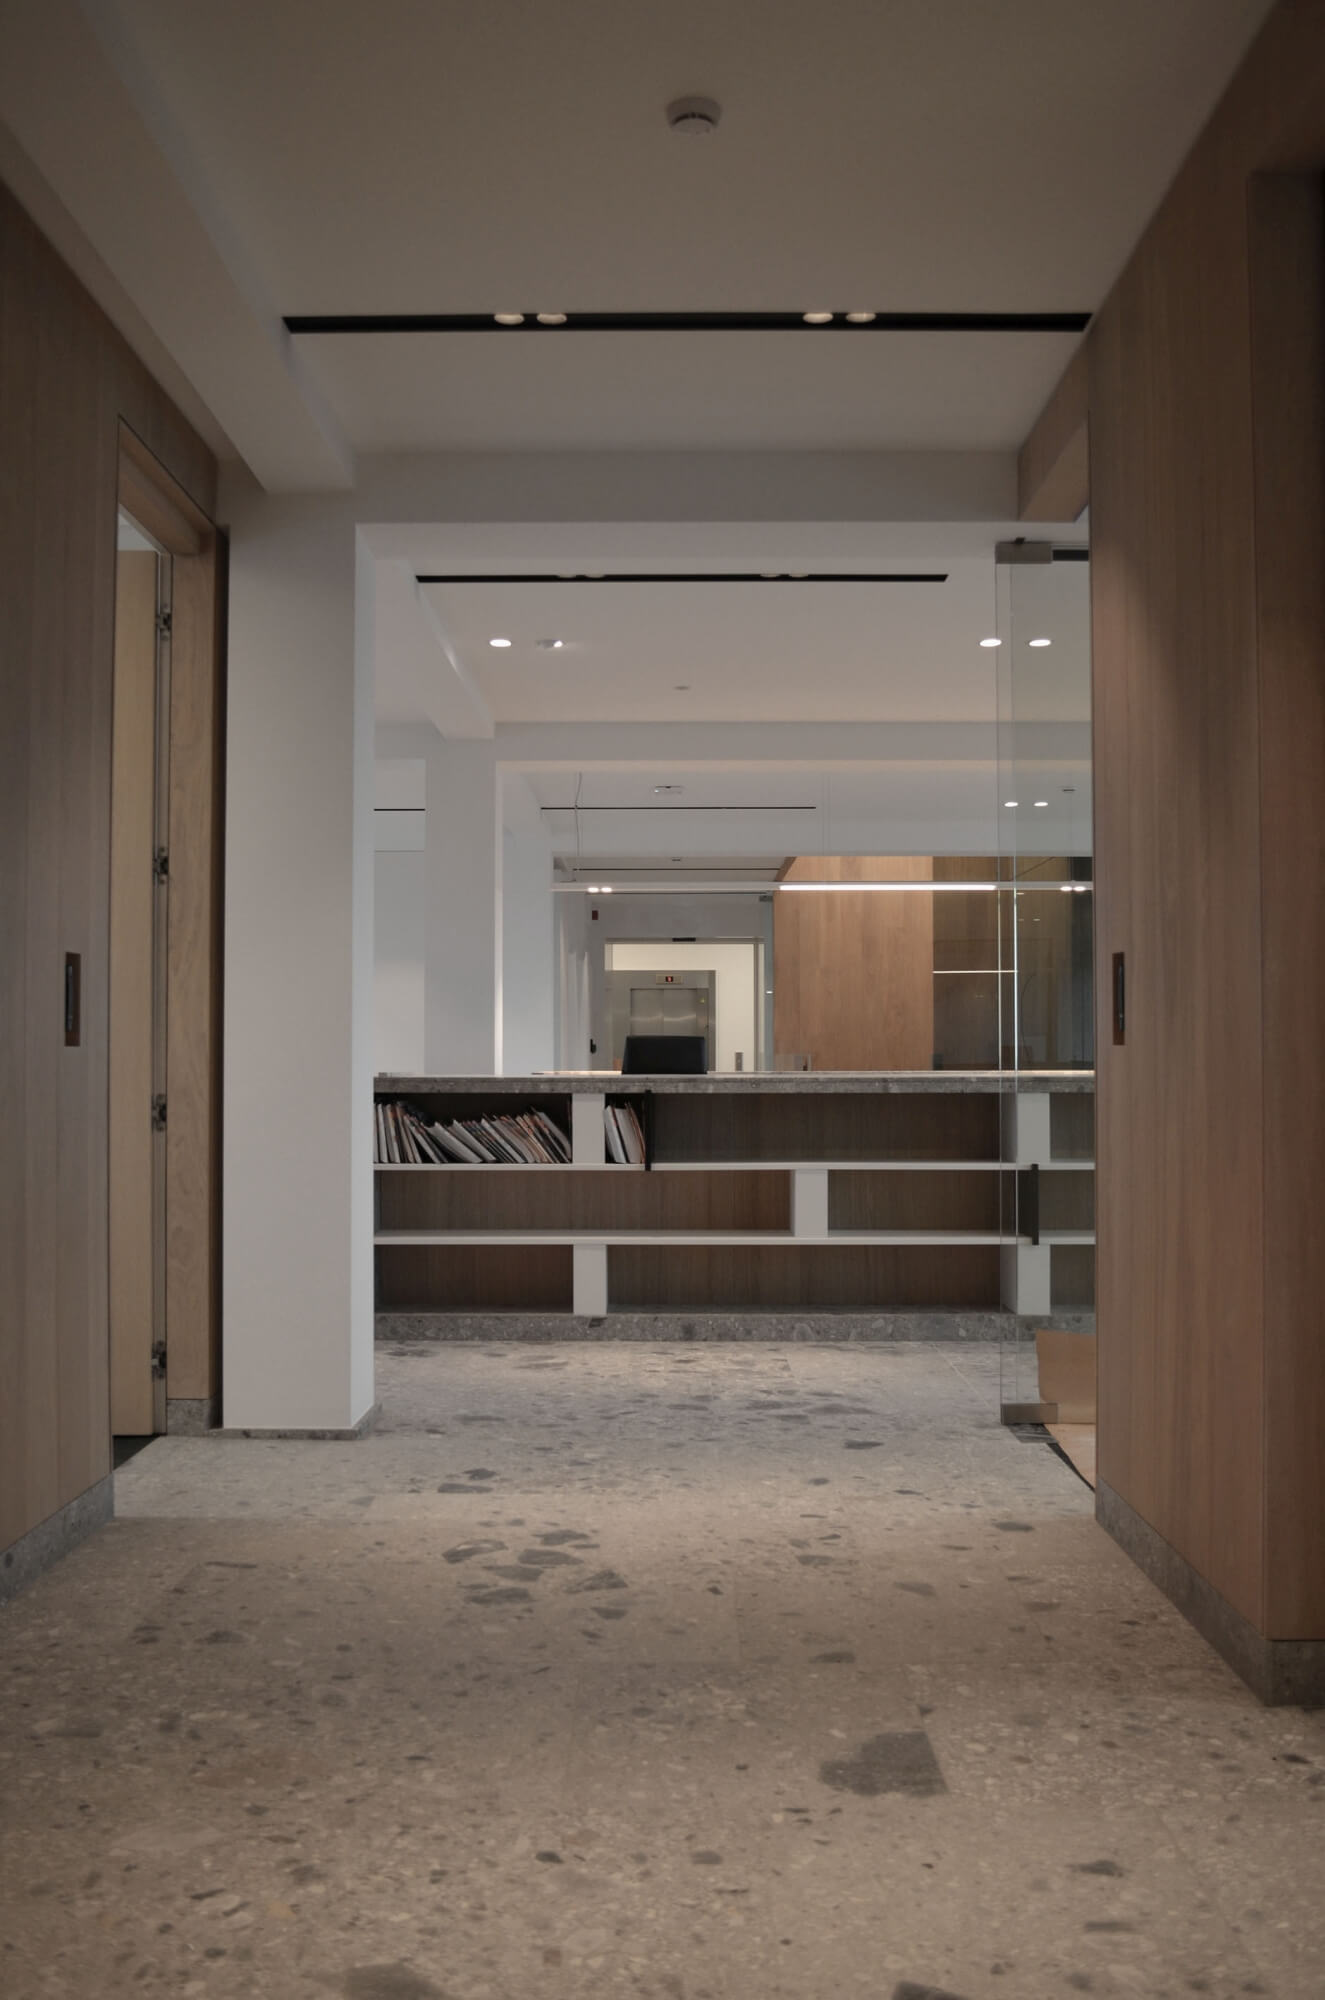 Interior designed office space with wood cabinets and stone flooring.